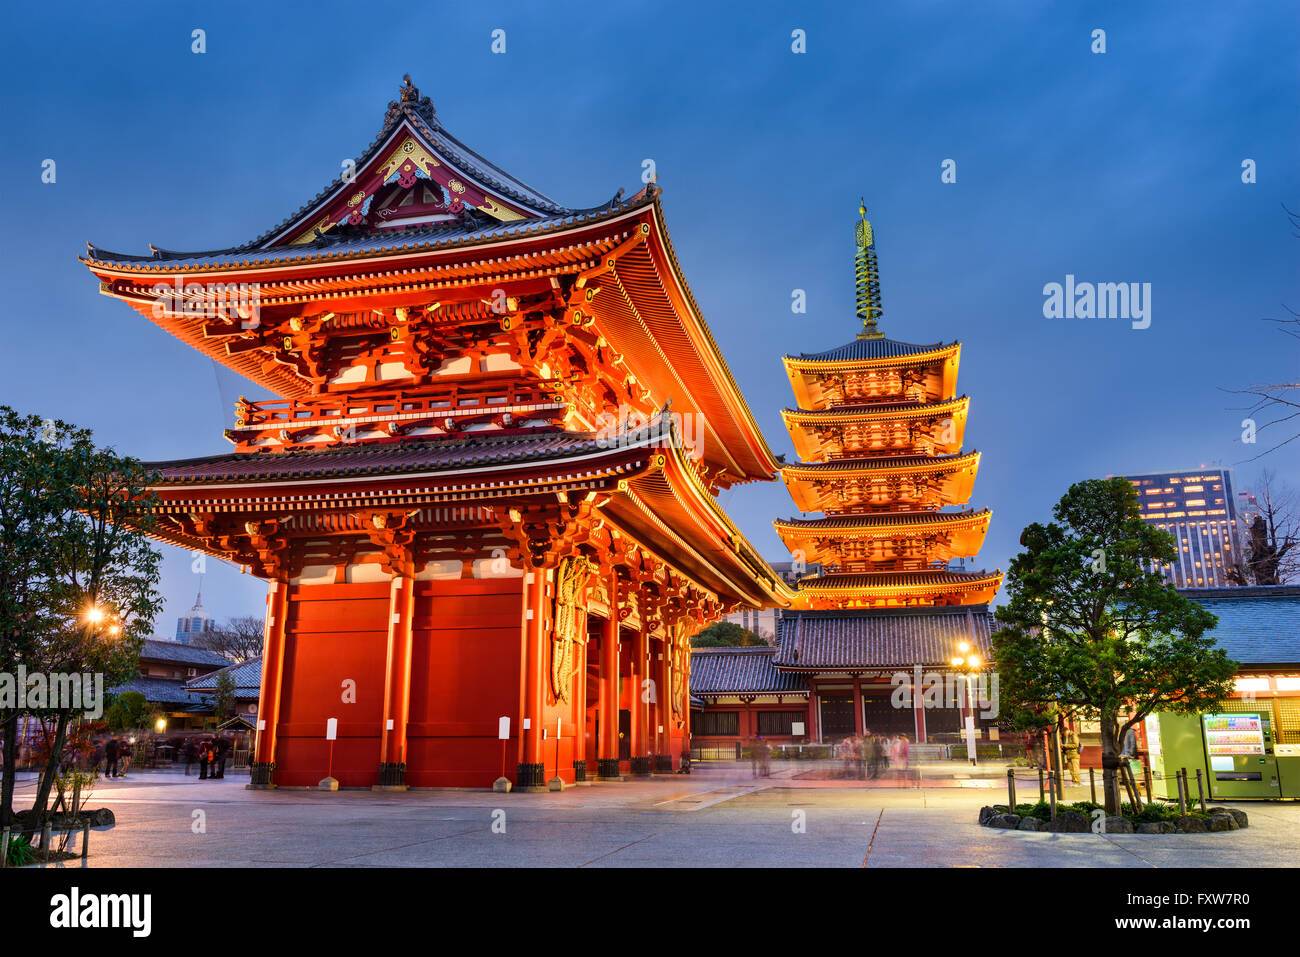 Asakusa, Tokyo at Sensoji Temple's Hozomon Gate and five storied pagoda. - Stock Image